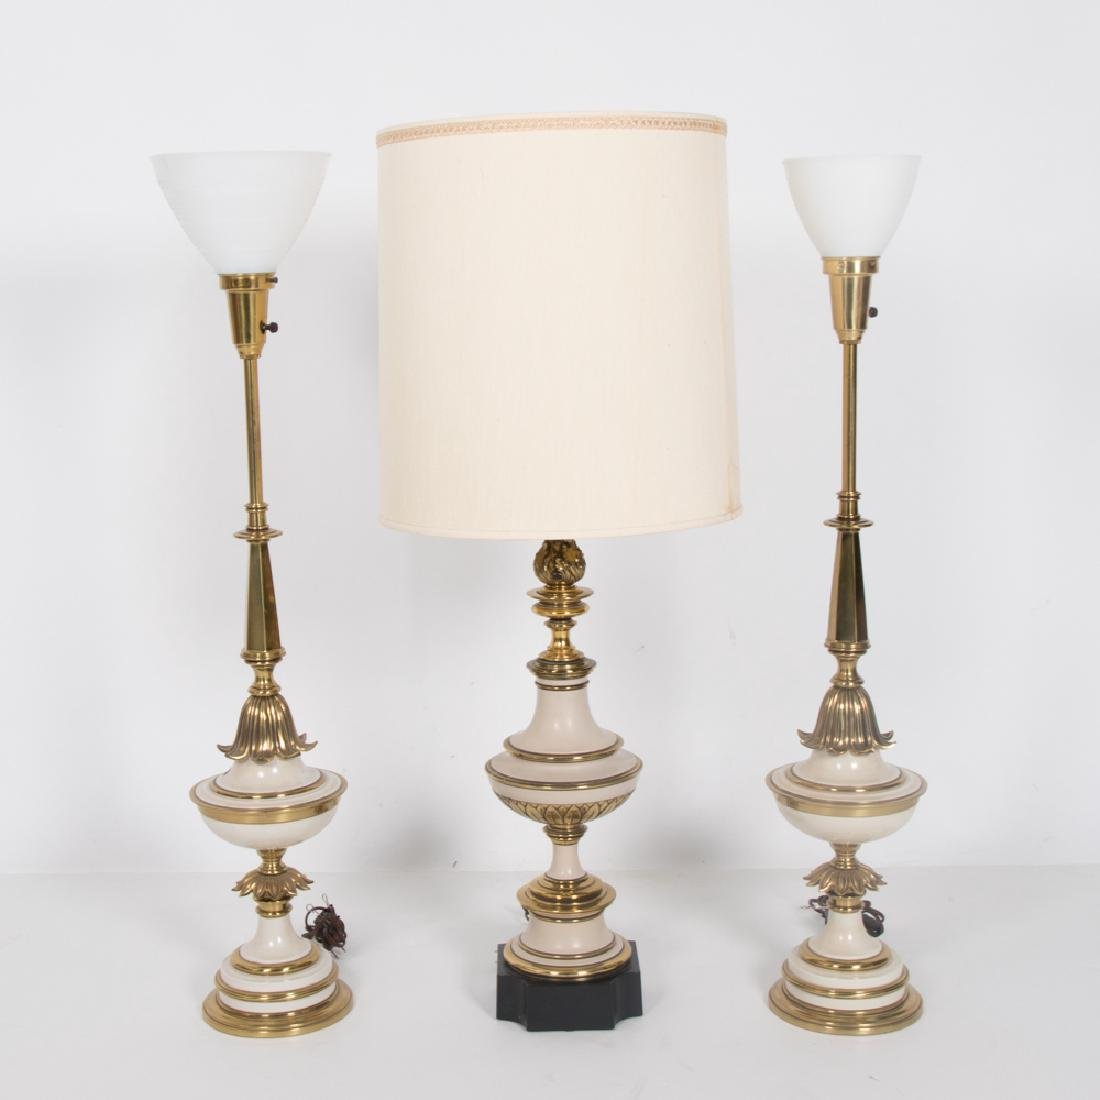 A Group of Three Vintage Painted Brass Table Lamps,